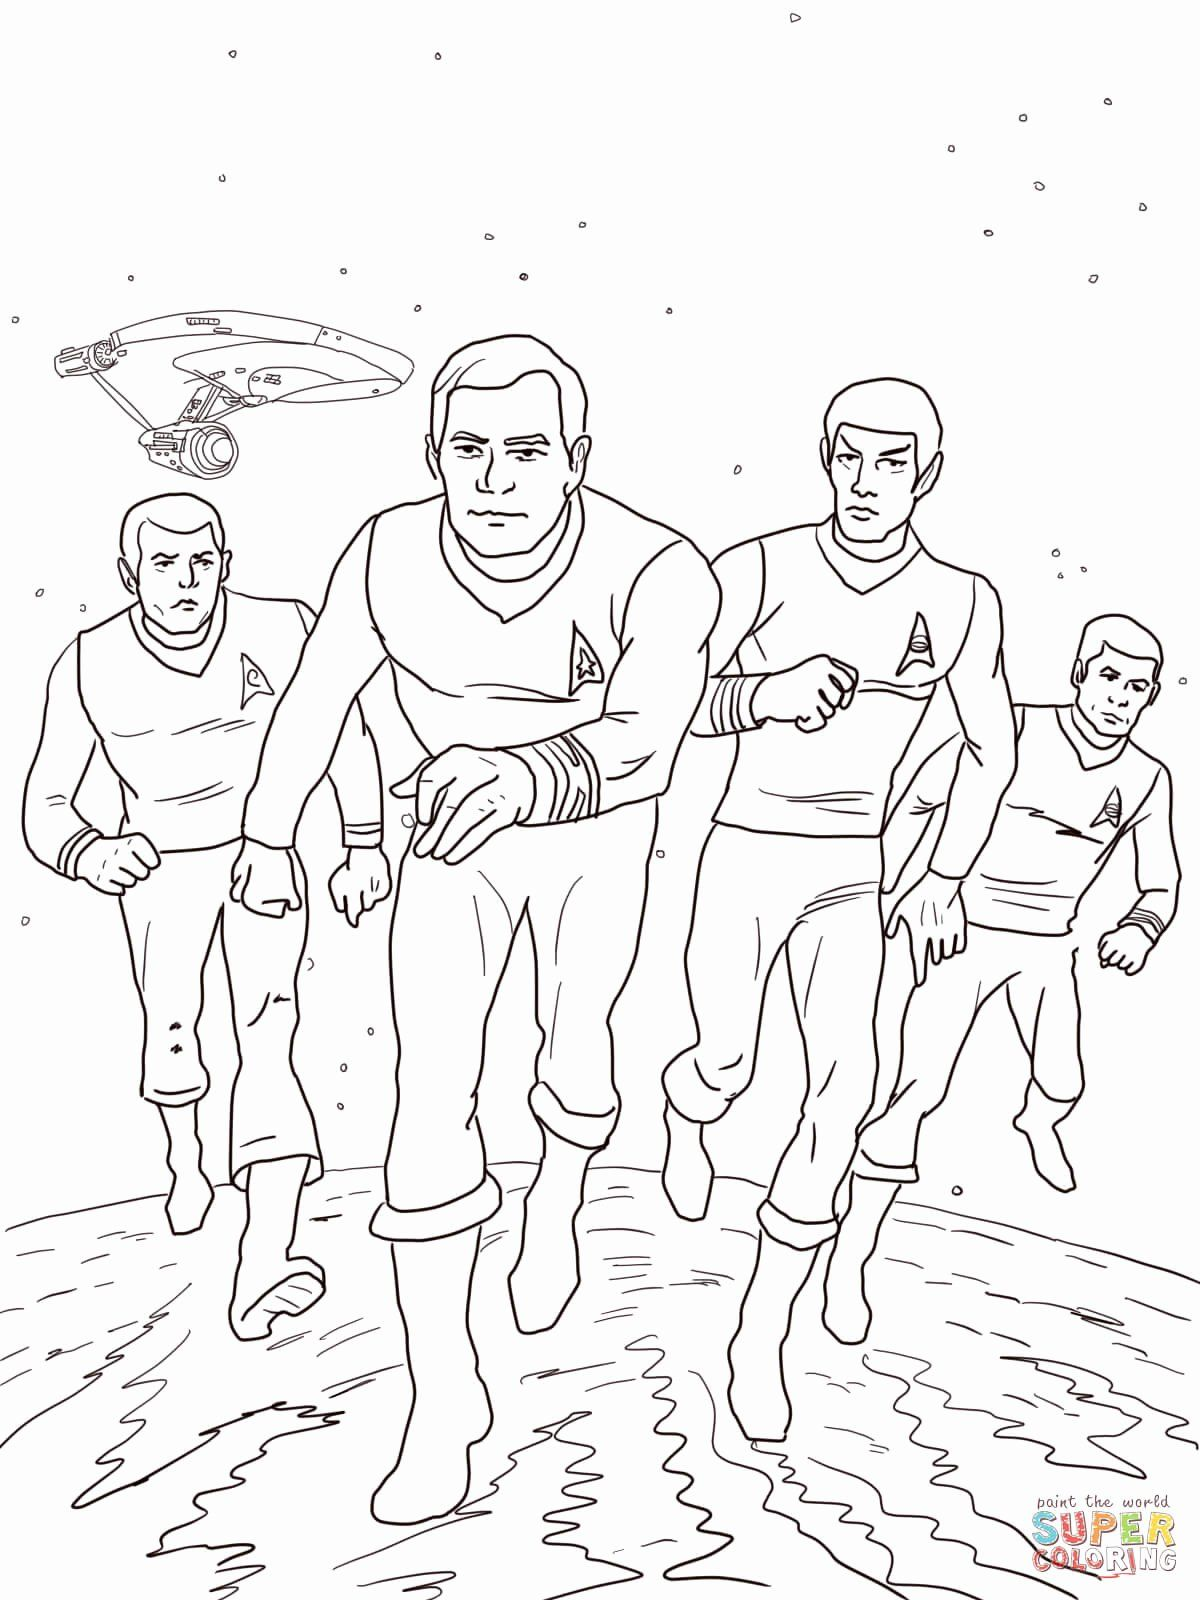 Star Trek Coloring Book Unique Star Trek The Animated Series Coloring Page In 2020 Star Wars Characters Coloring Books Star Trek Party